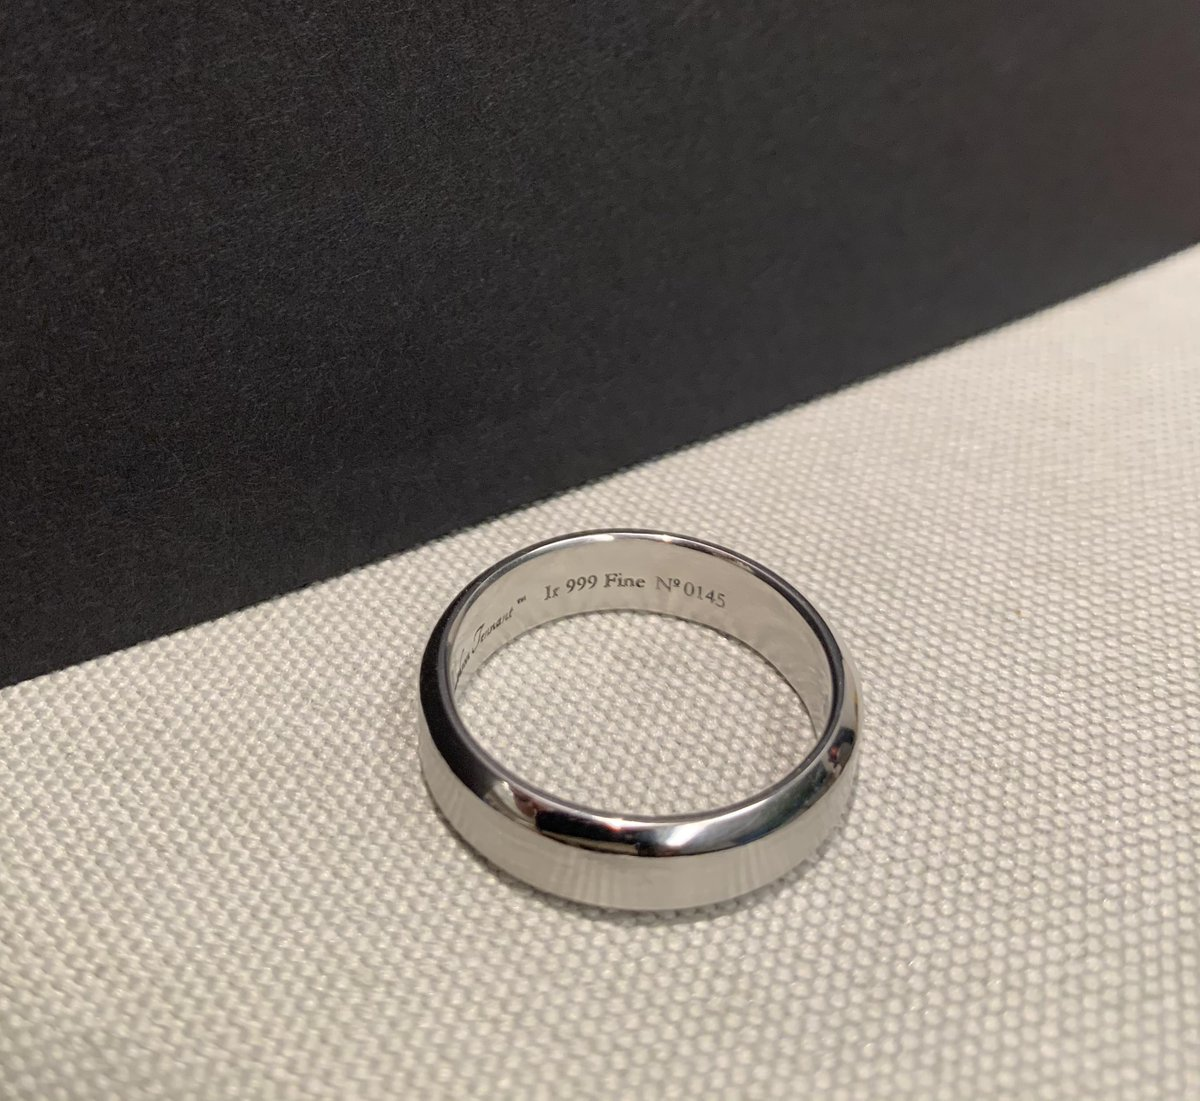 RT @SmithsonTennant: A close-up look at a custom dual toned ring we created for a customer. Interested in one of your own? Tap that contact button and let us know how we can help. #iridium #raremetals #customized